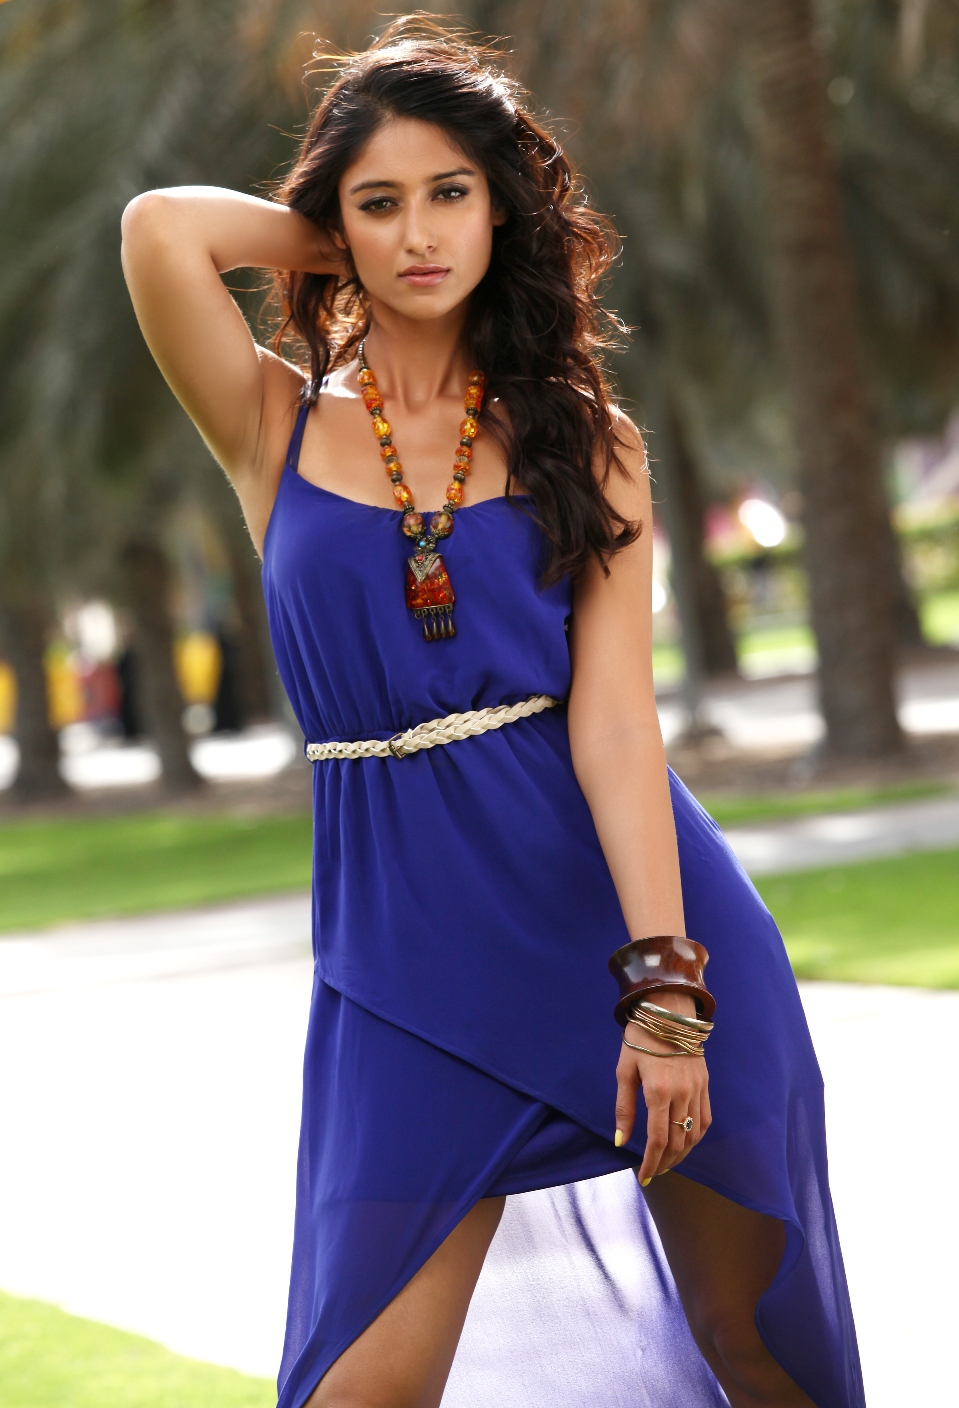 Ileana Spicy Stills